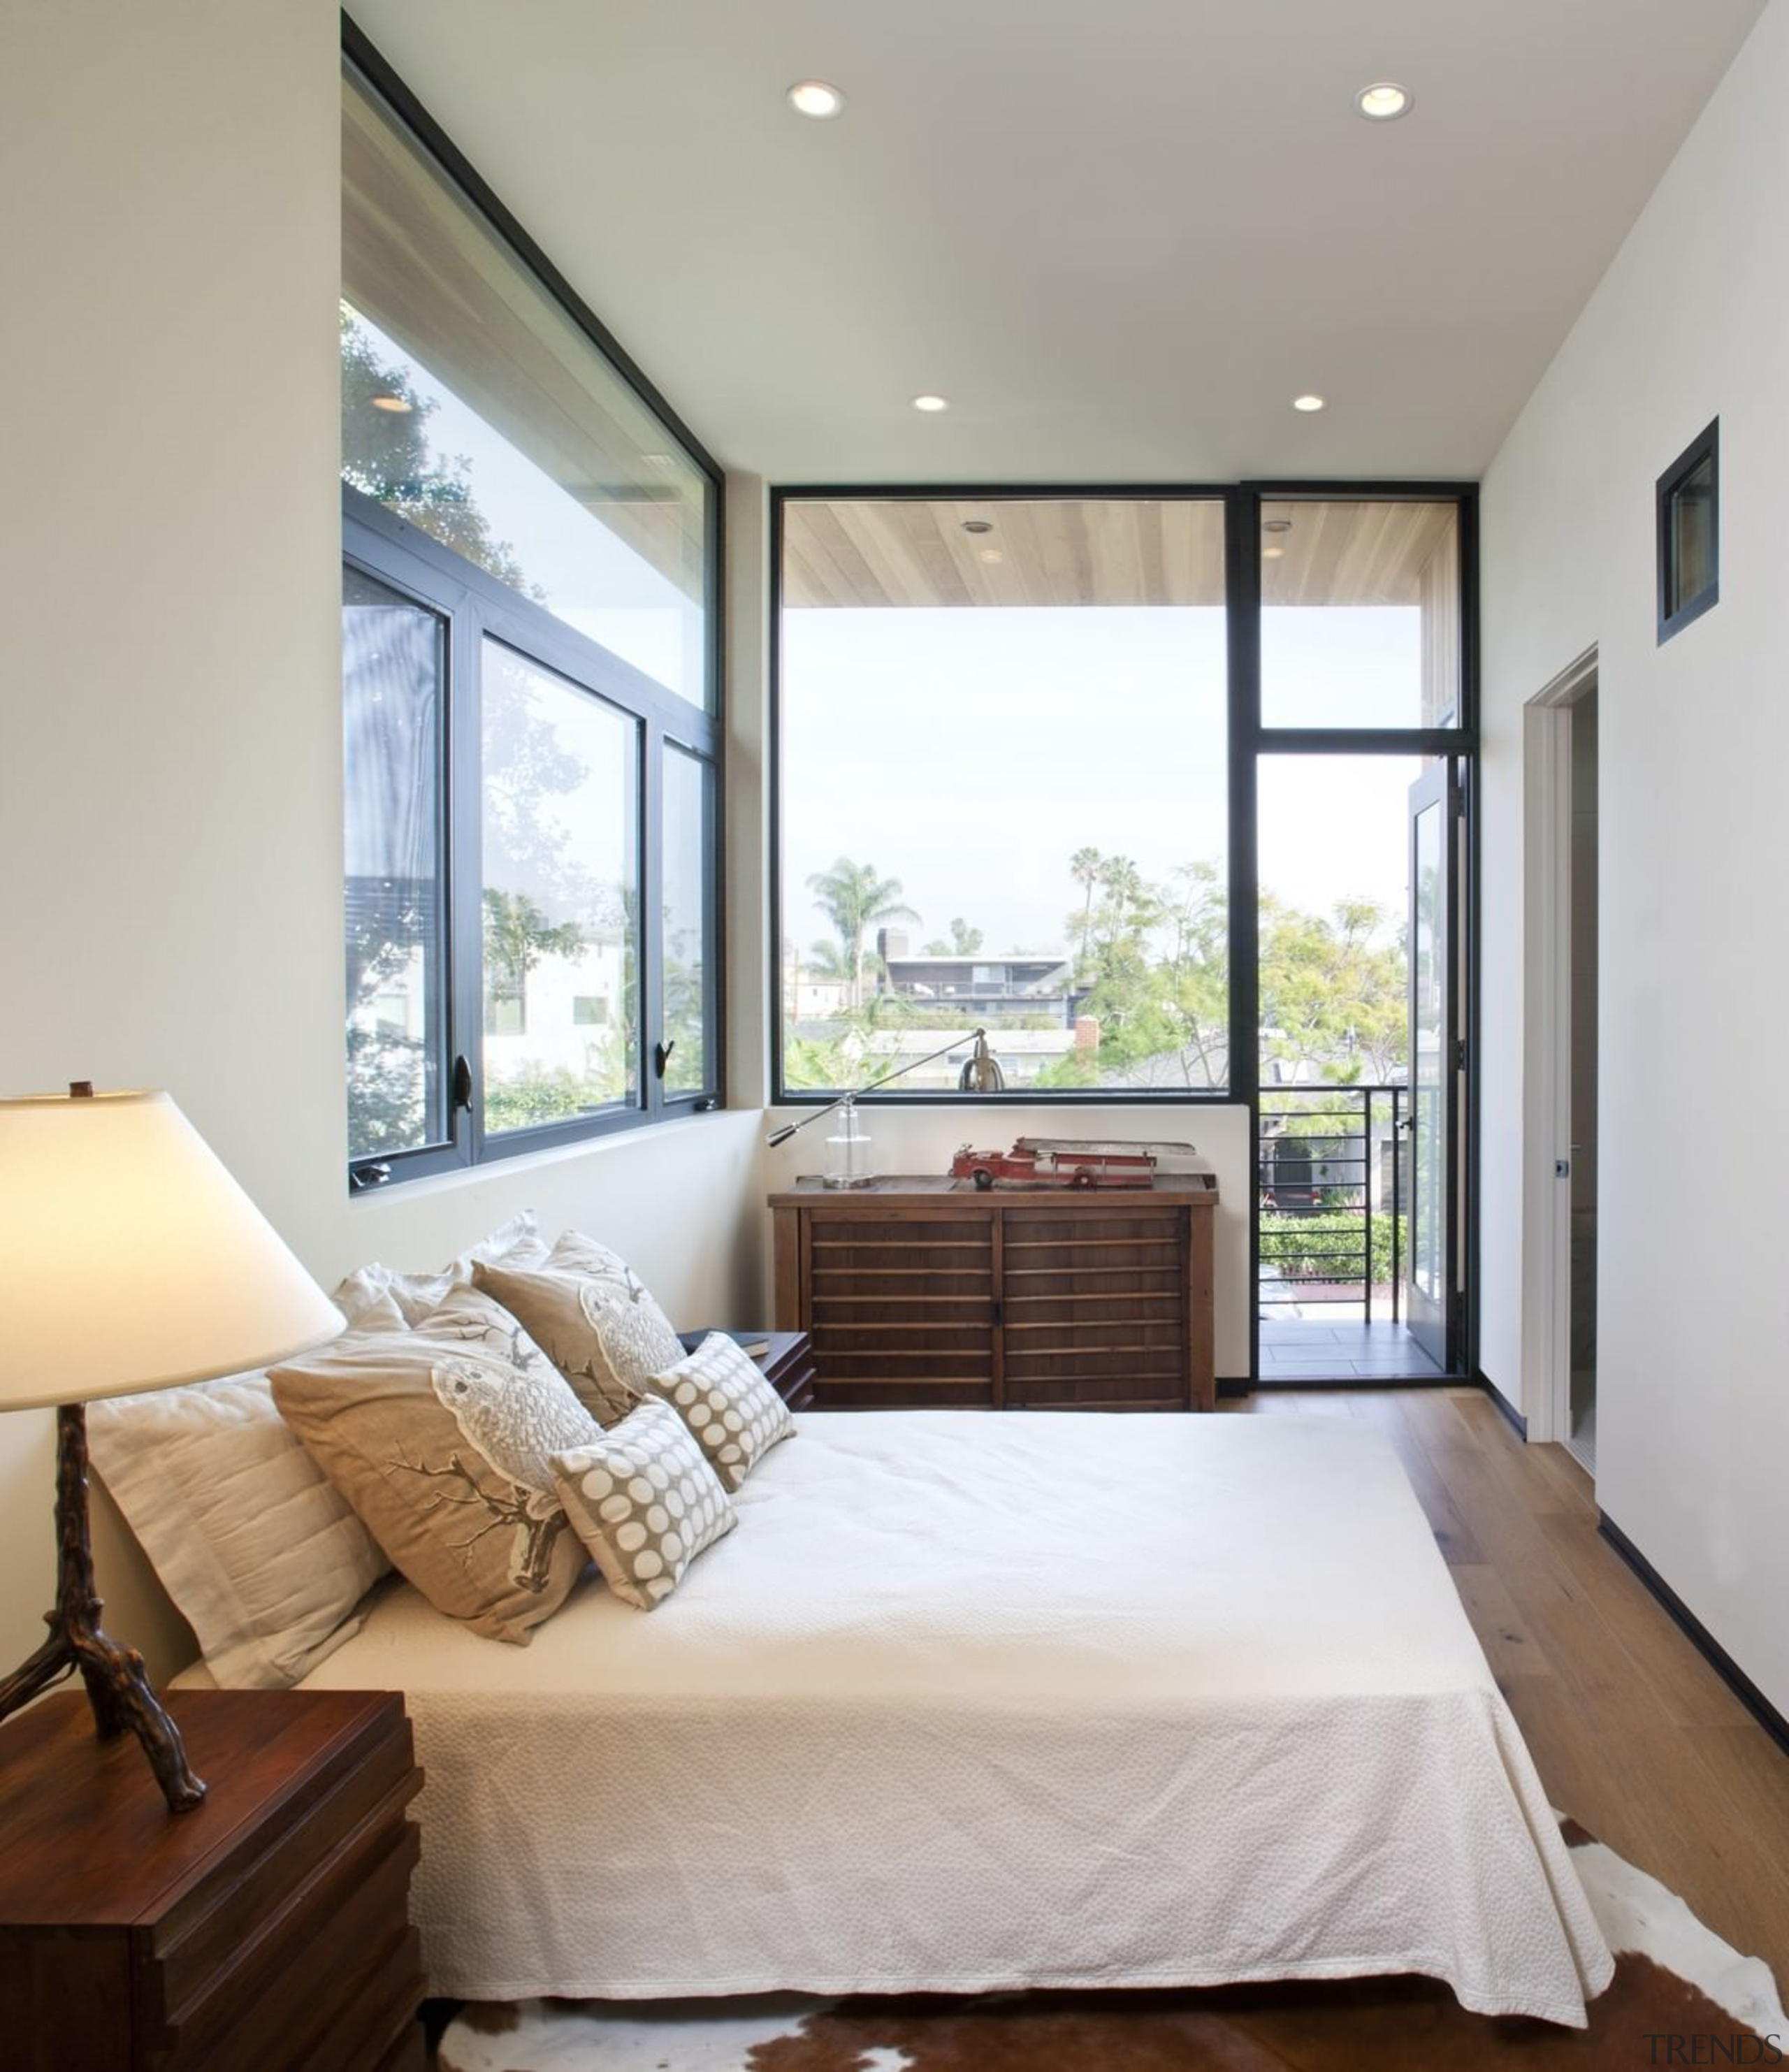 This bedroom looks out to a leafy neighbourhood architecture, bed frame, bedroom, ceiling, daylighting, estate, floor, home, house, interior design, living room, property, real estate, room, window, wood, gray